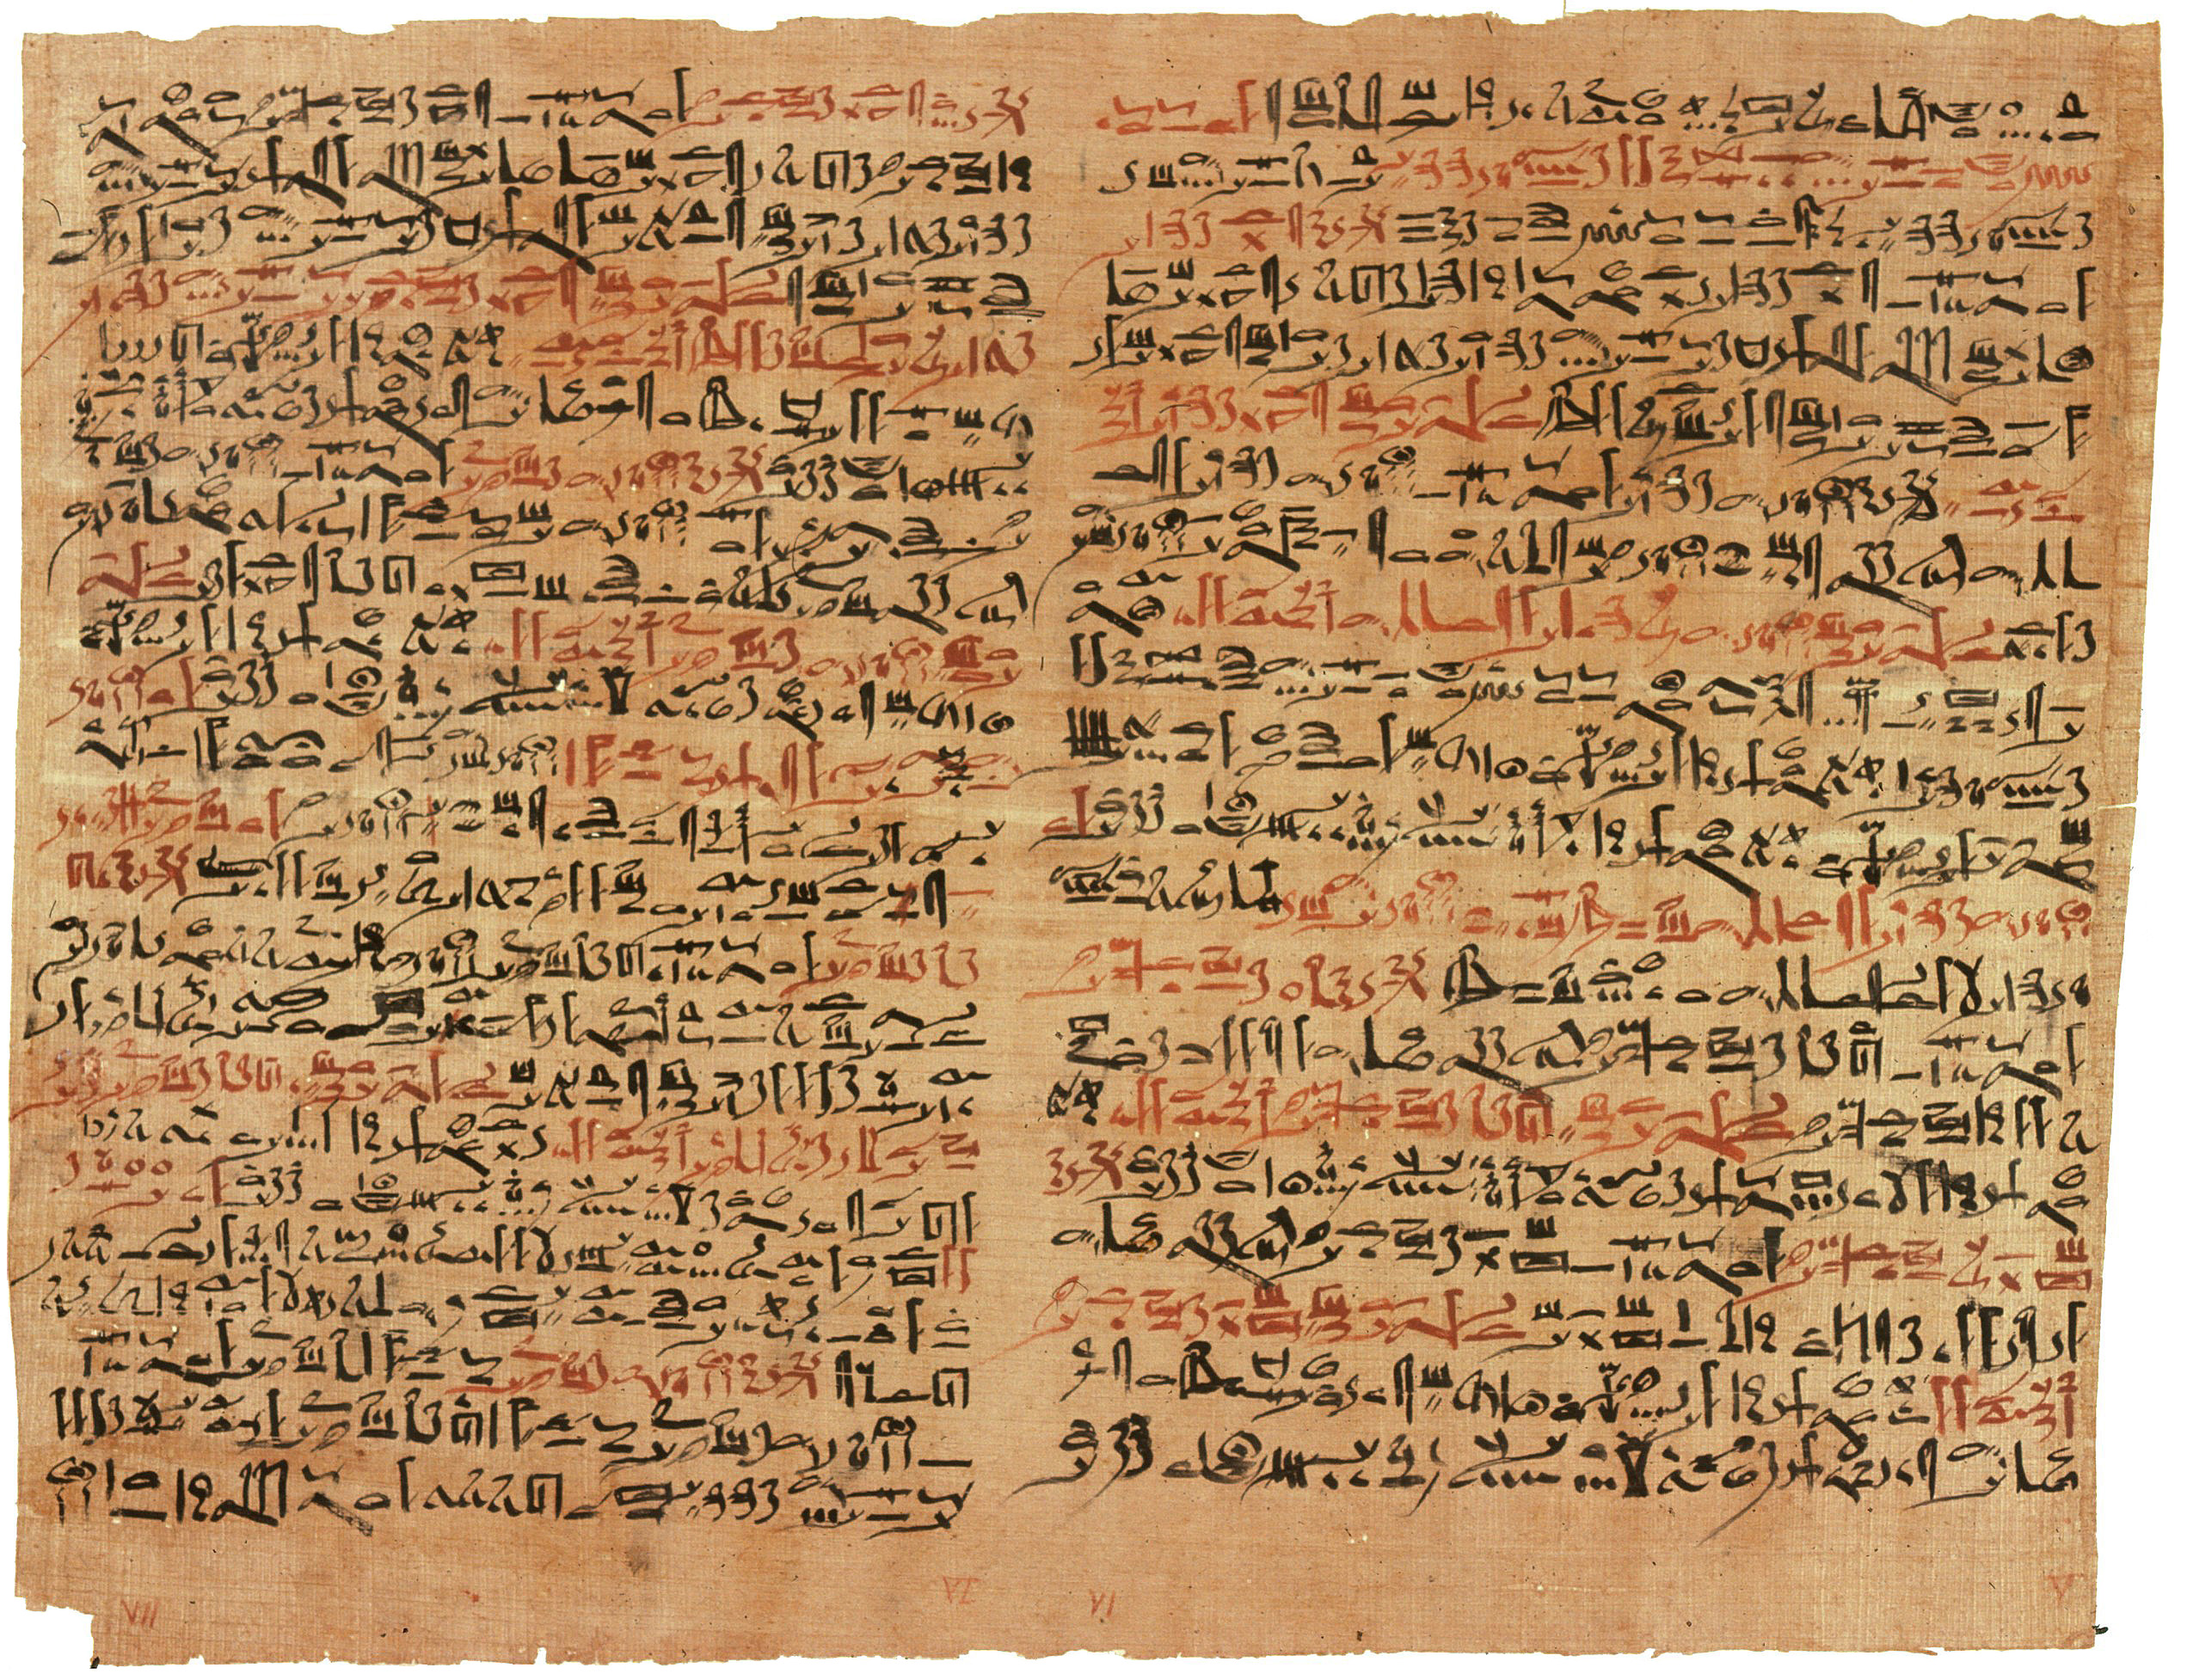 History of surgery wikipedia plates vi and vii of the edwin smith papyrus around the 17th century bc among the earliest medical texts fandeluxe Gallery